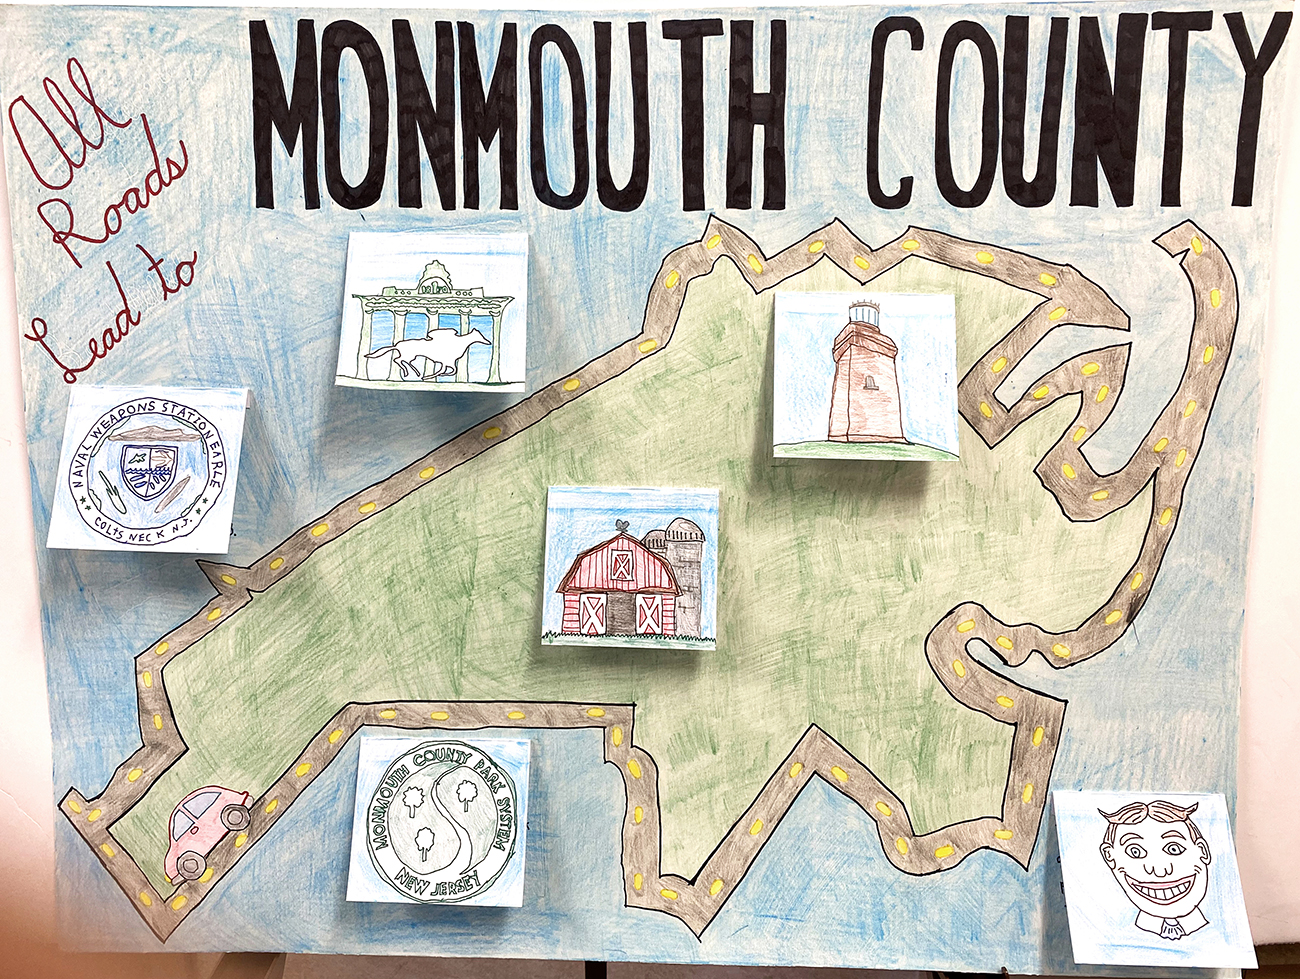 featured image for: <center>2021 'MY COUNTY' POSTER CONTEST WINNERS ANNOUNCED<center>